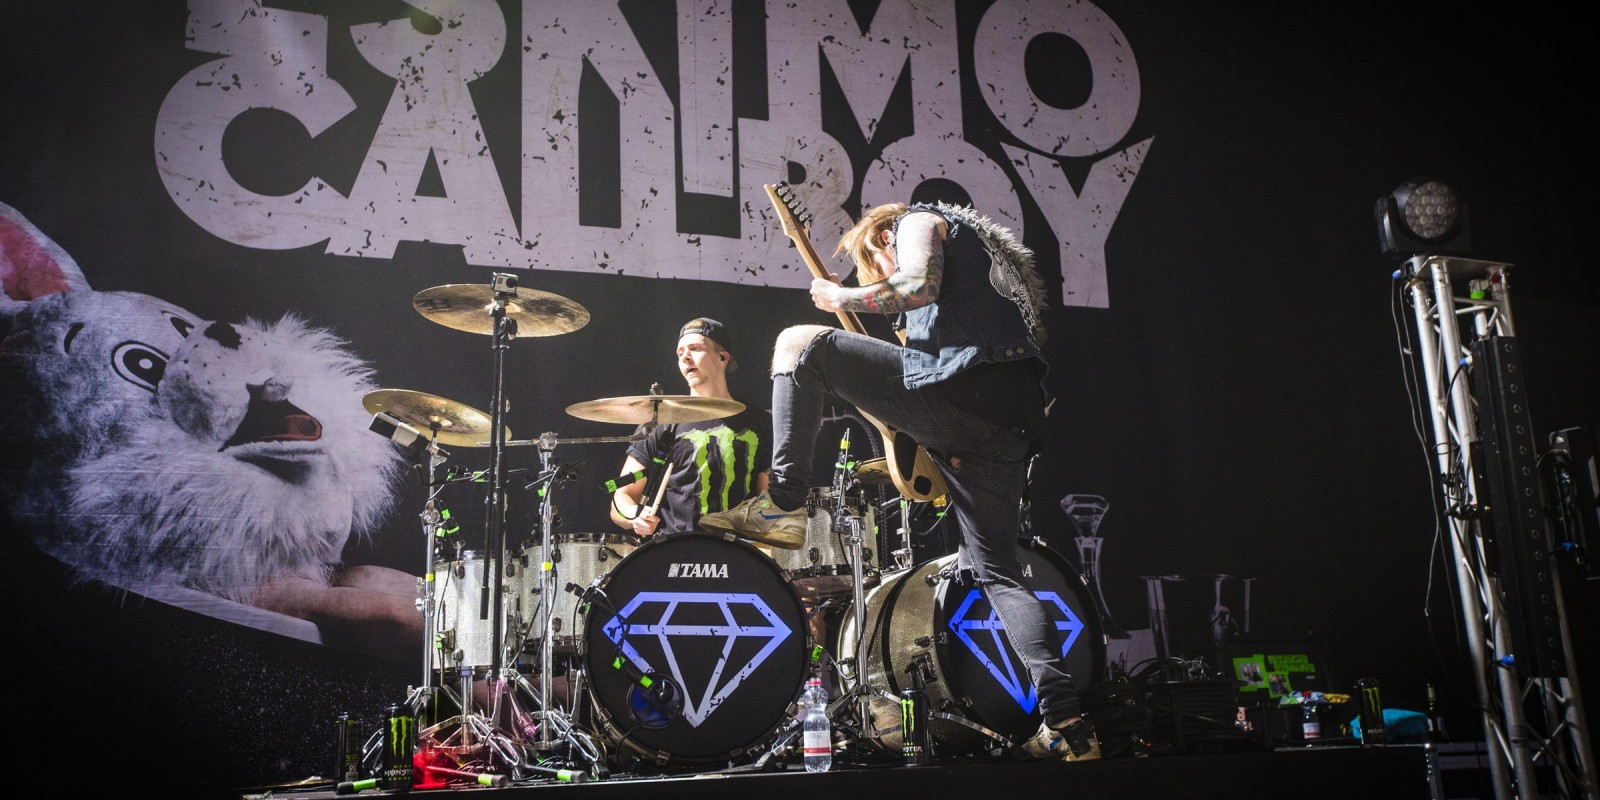 Eskimo Callboy on their European Tour in Dortmund.